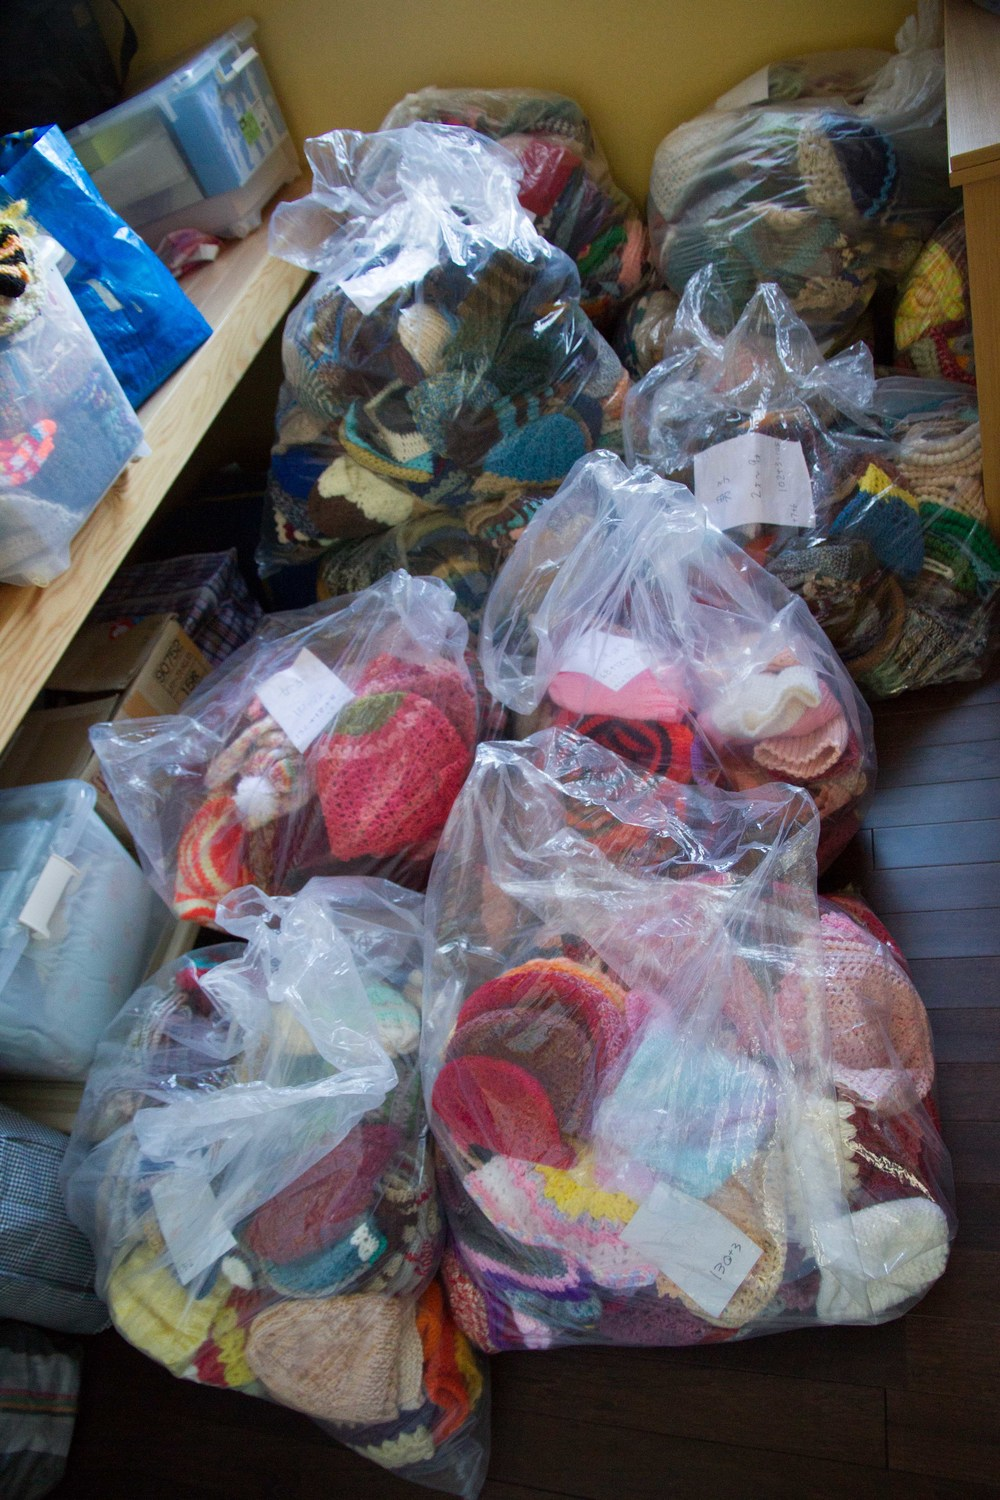 BAGS OF HATS WAITING IN STORAGE ROOM_ i would use this first before showing all the hats on display.jpg